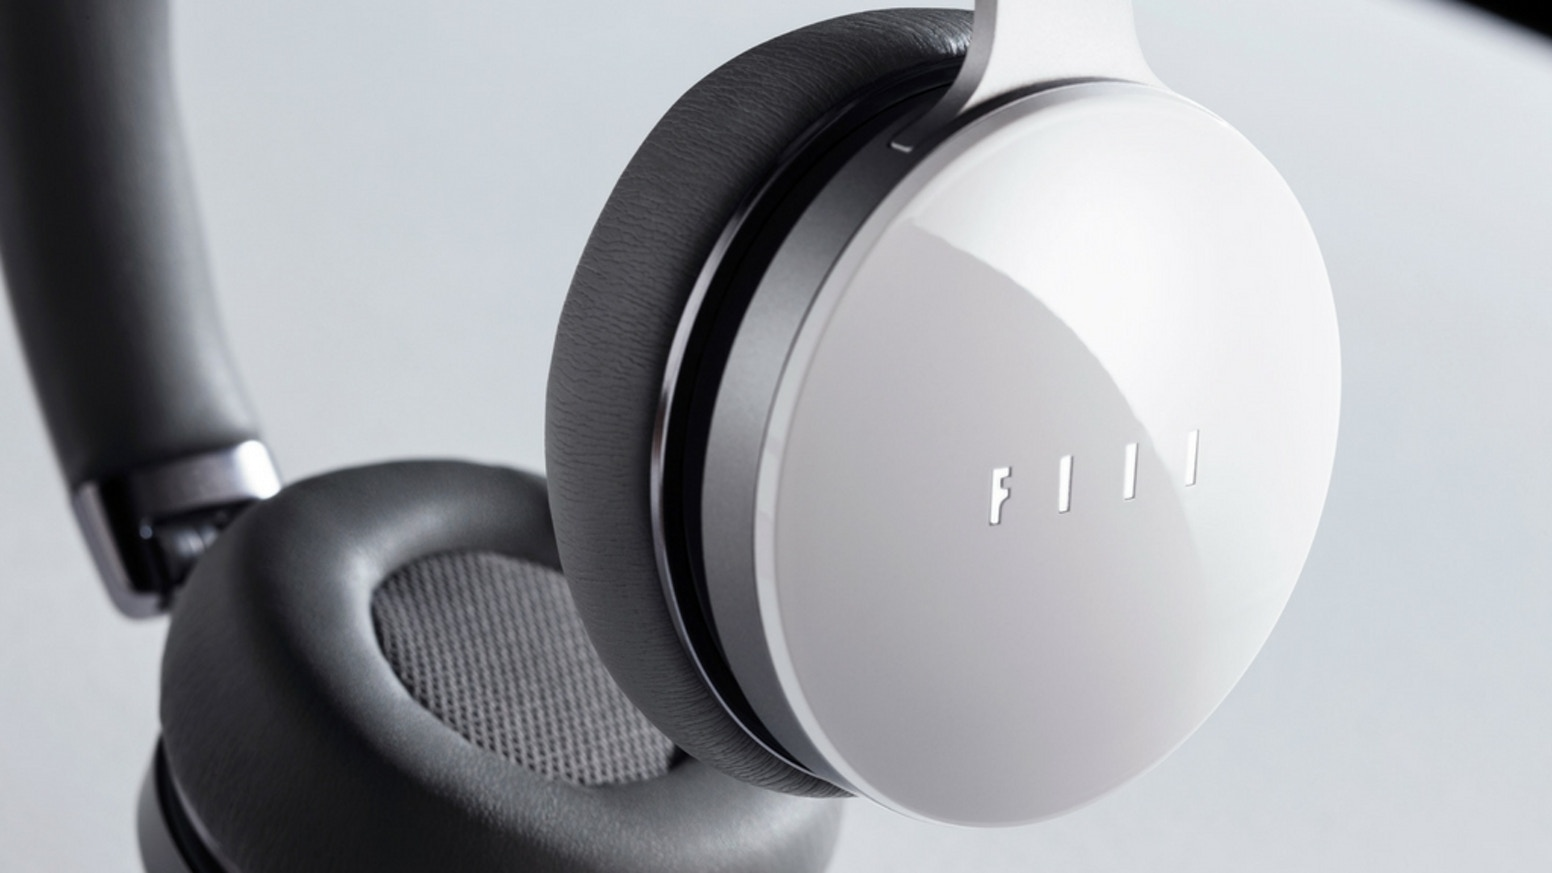 Touch control, motion sensors, patented MAF technology & music storage make FIIL Diva Pro the most advanced headphones ever invented.